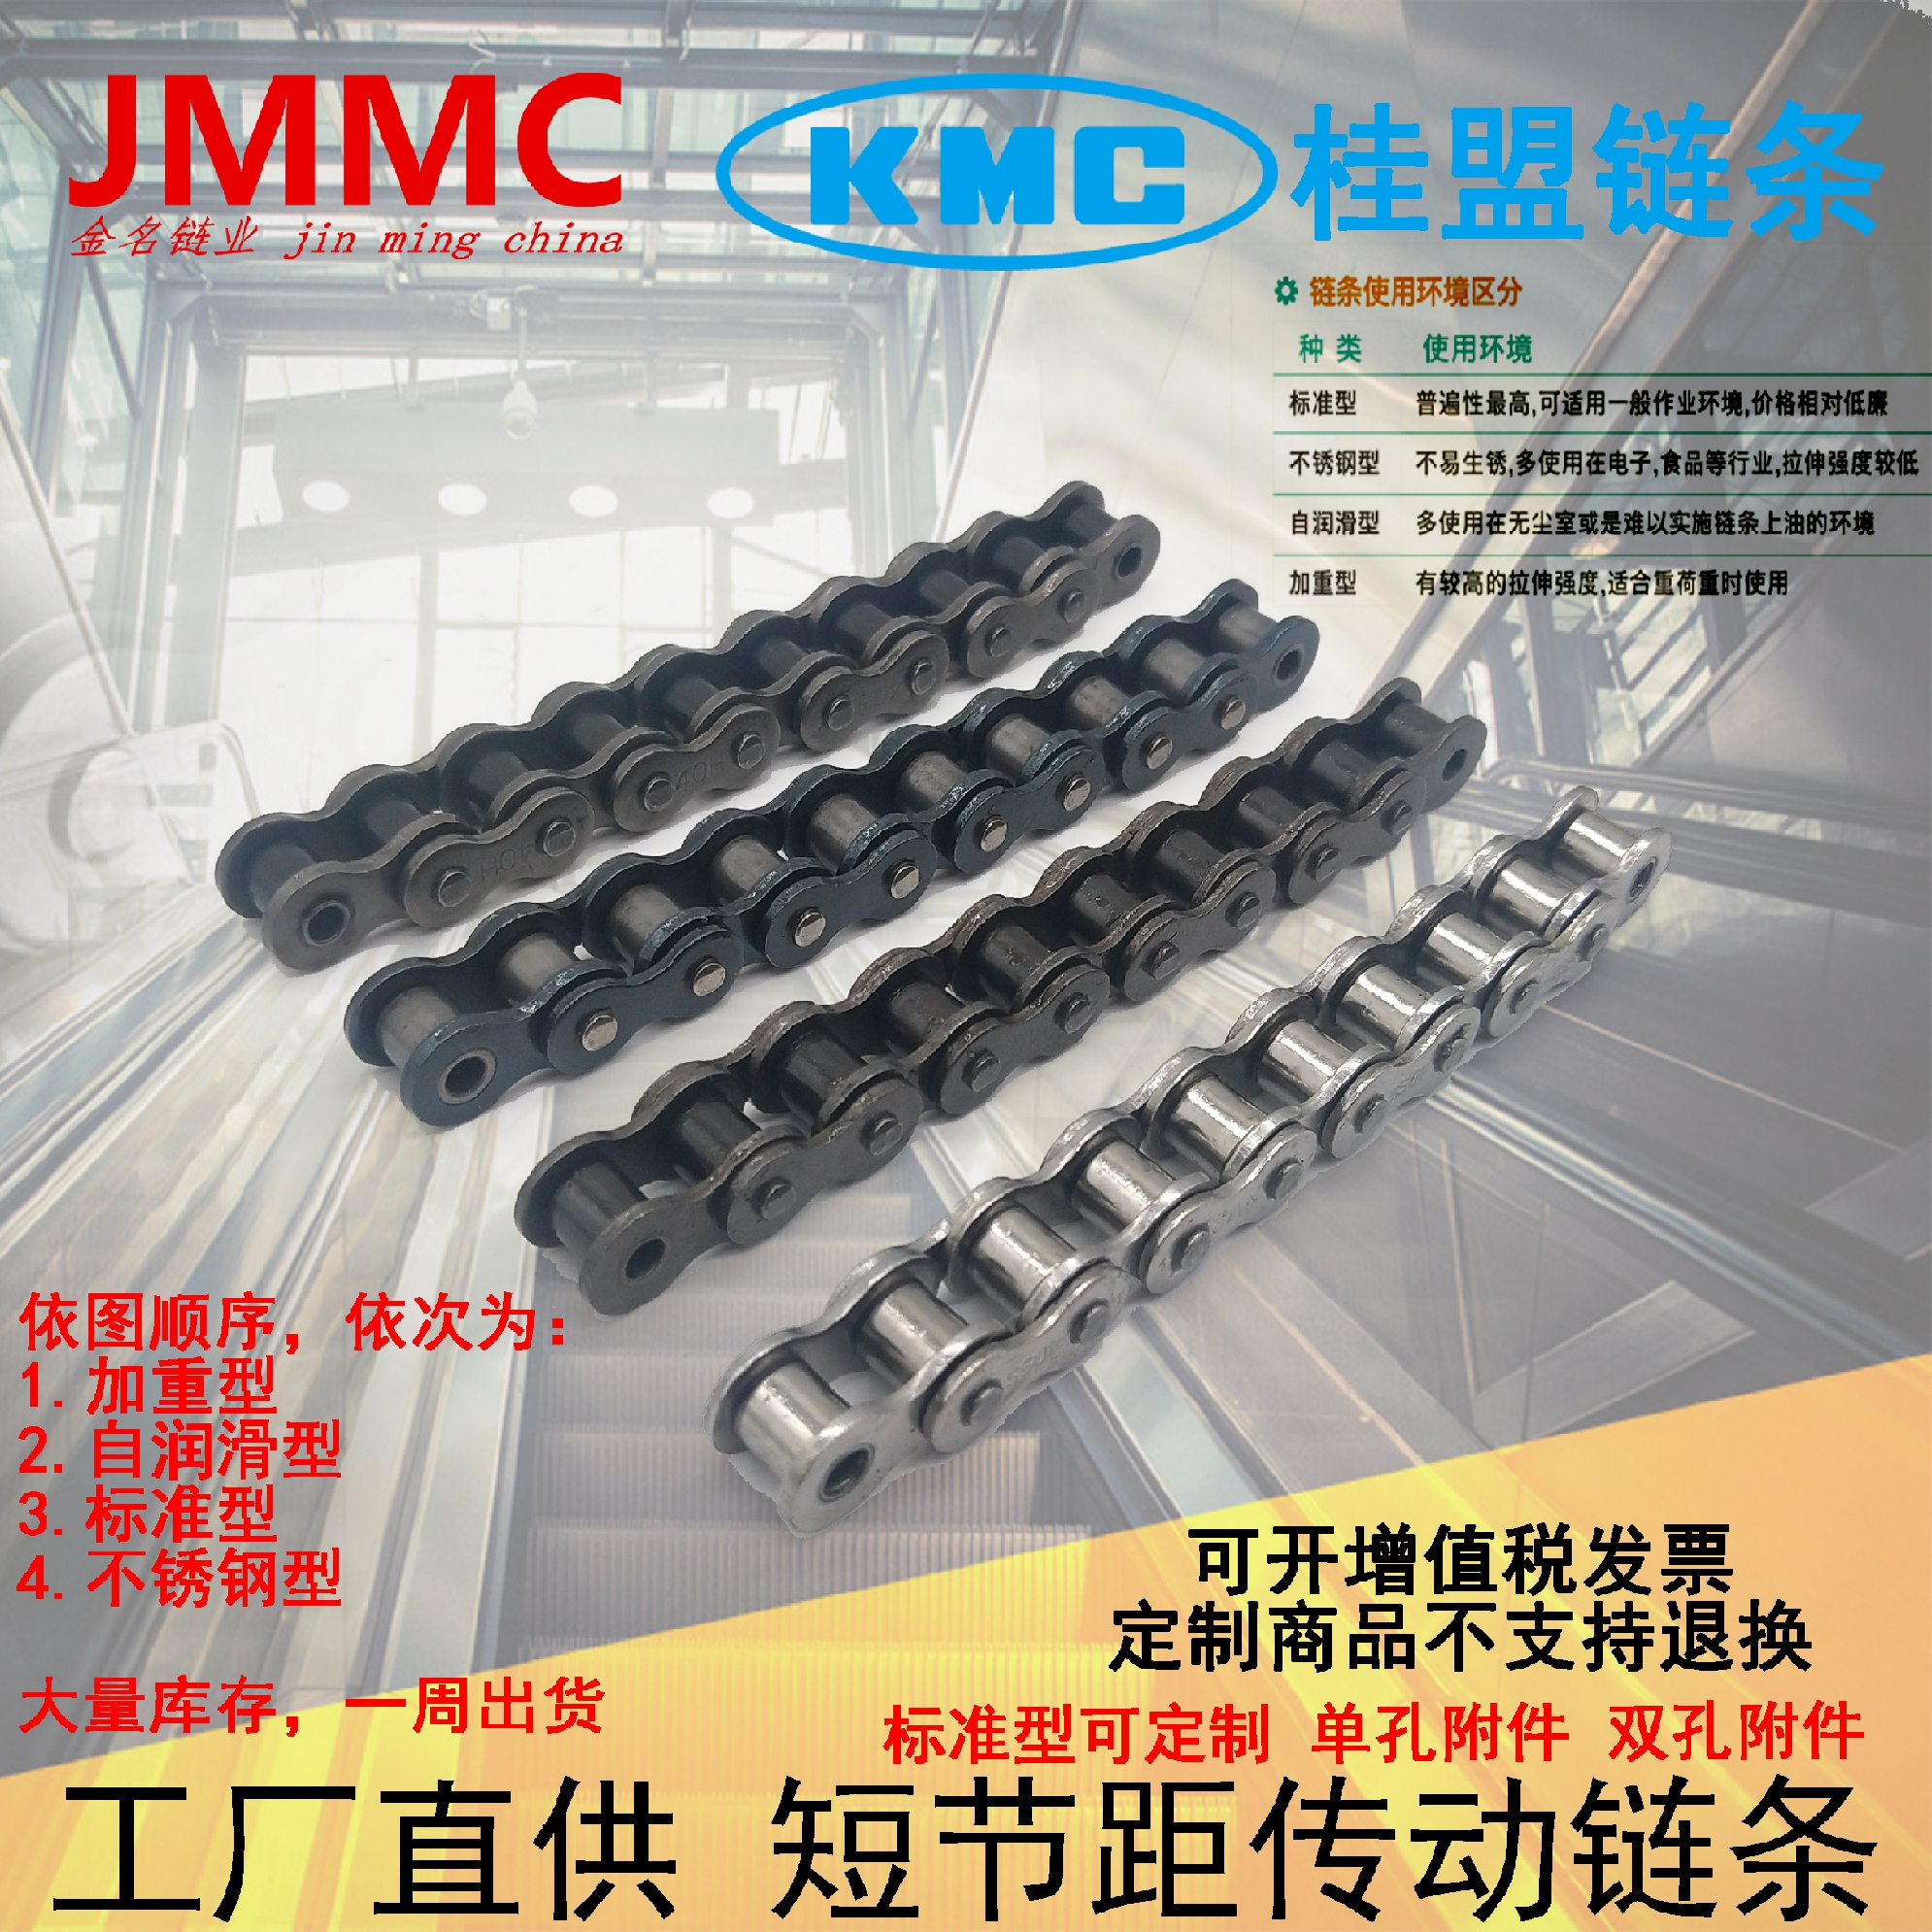 KMC rs25ss-1r 04c-1 super chain guimeng chain stainless steel a series single row transmission chain